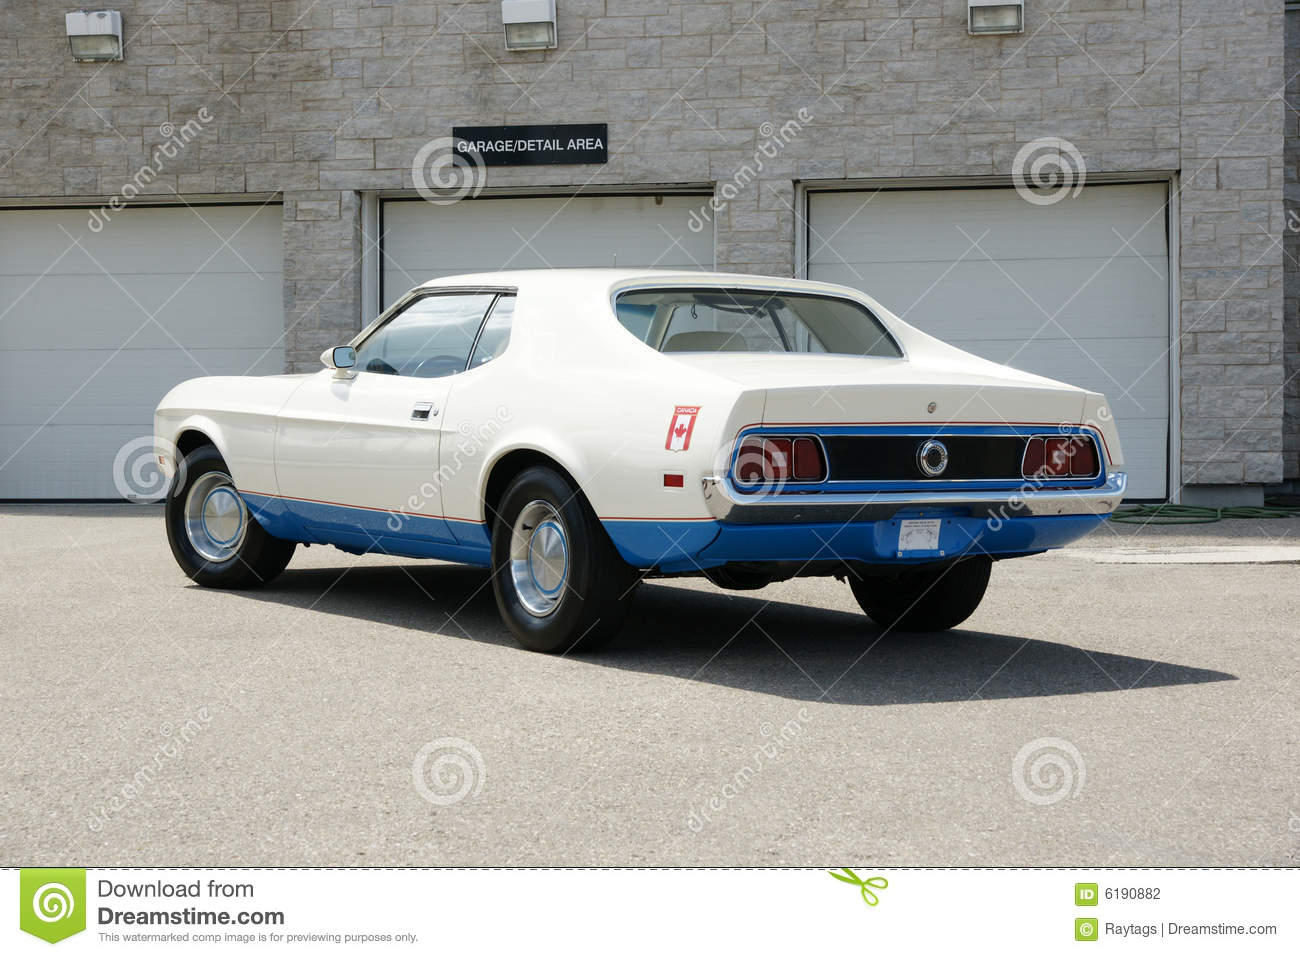 Sony dslr a700 with 16 80mm lens picture of the rare 1972 mustang coupe canadian sprint edition